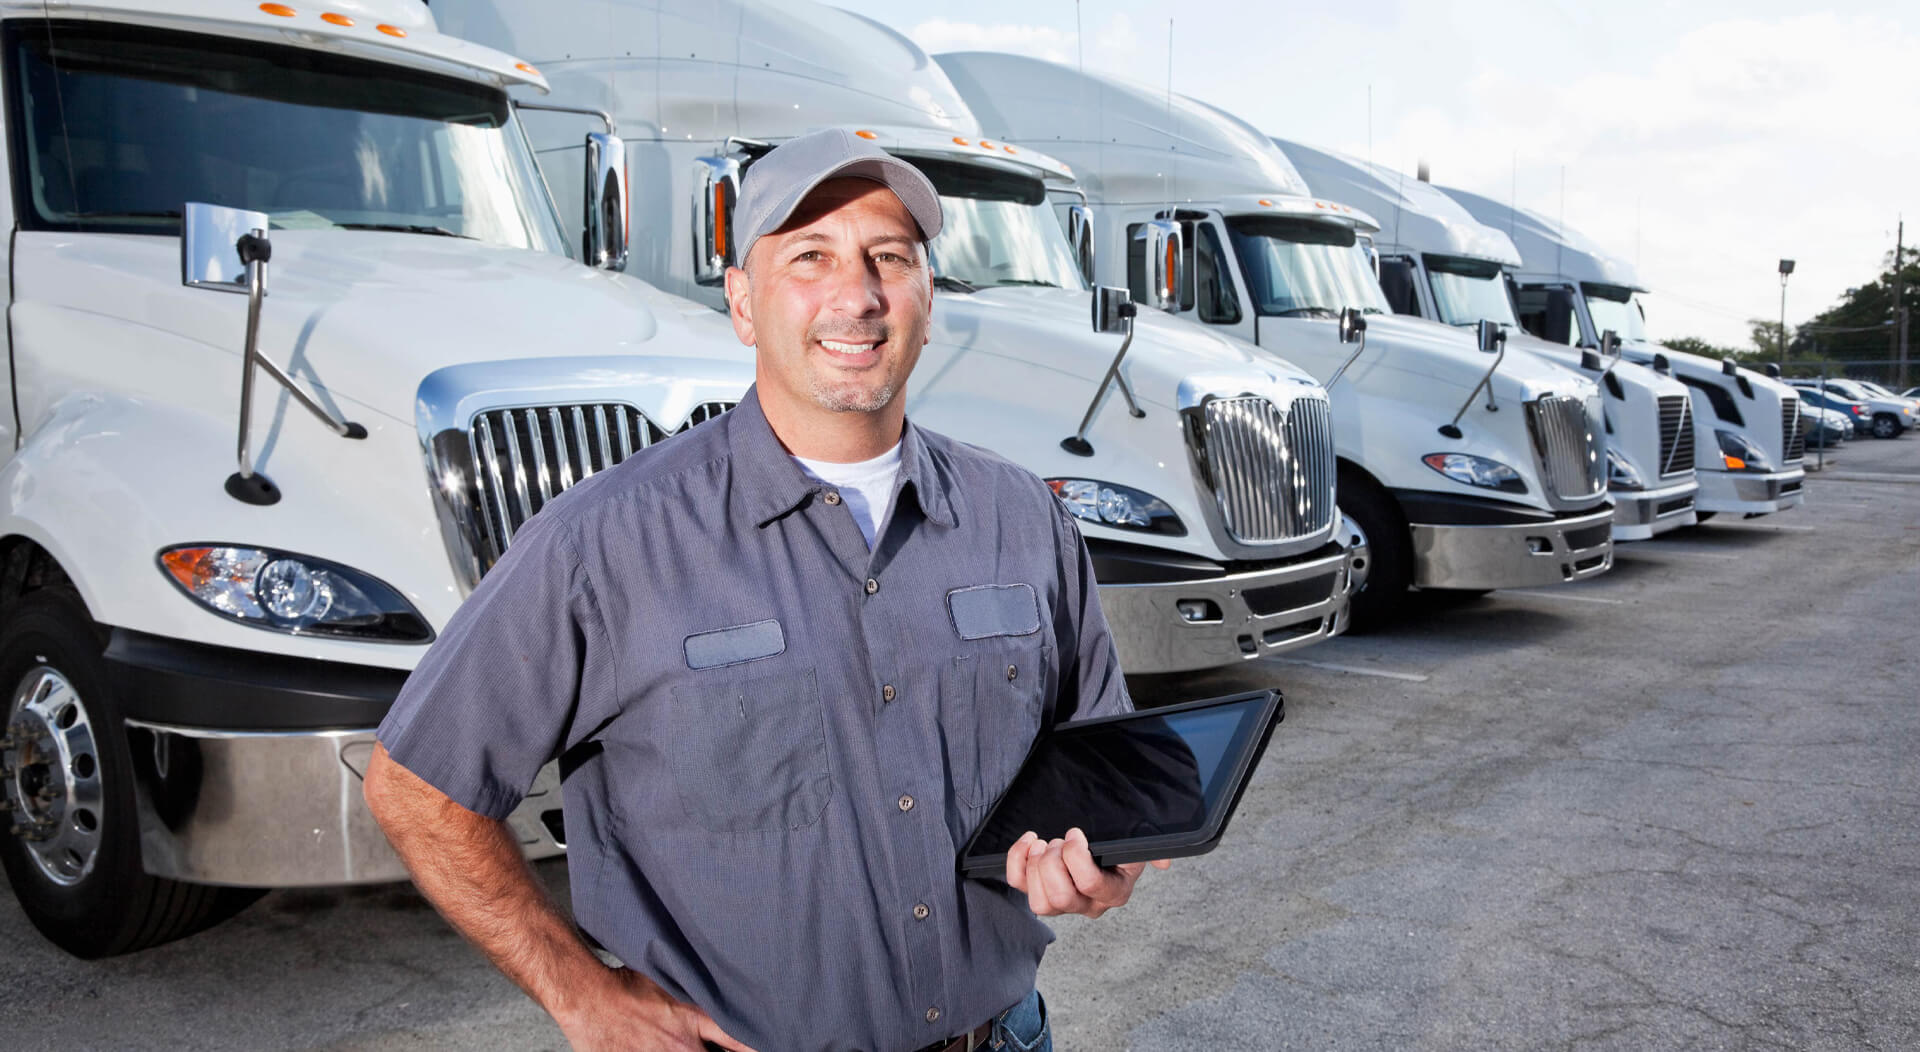 a truck owner is holding a tablet with his left hand while standing in a large parking lot in front of several large trucks